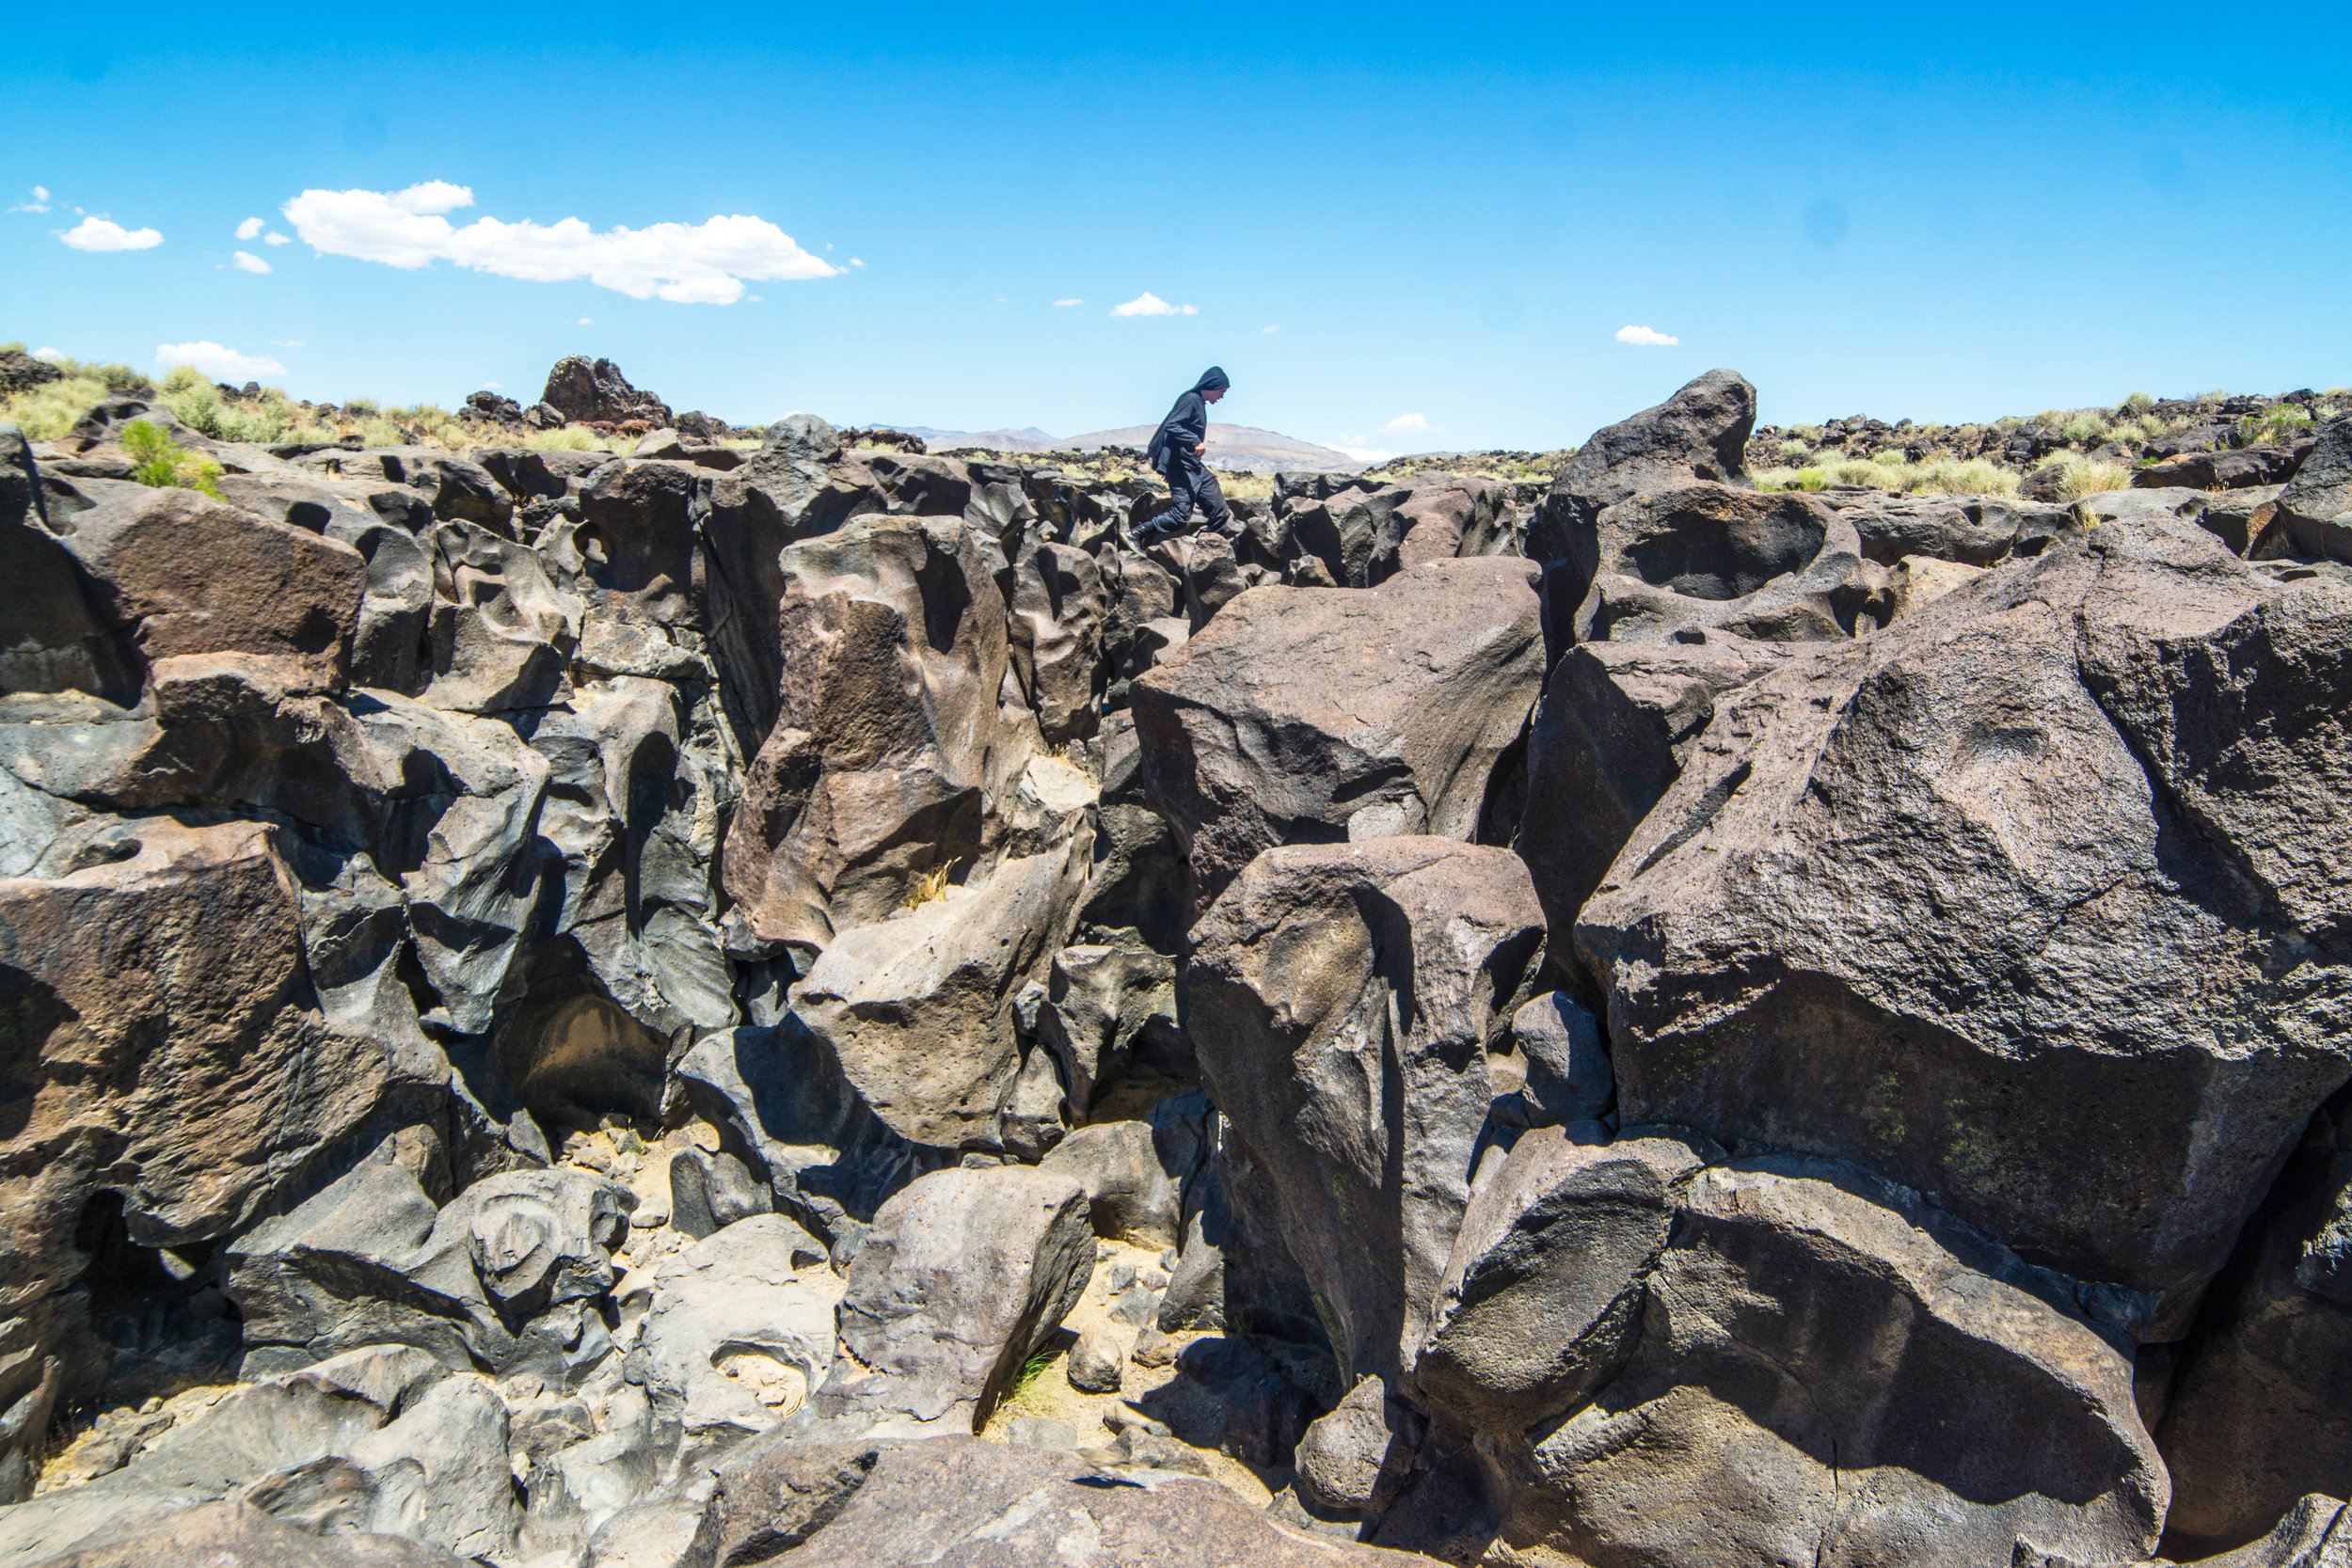 We briefly hop along the hardened magma before accepting defeat beneath the mid-afternoon desert sun.